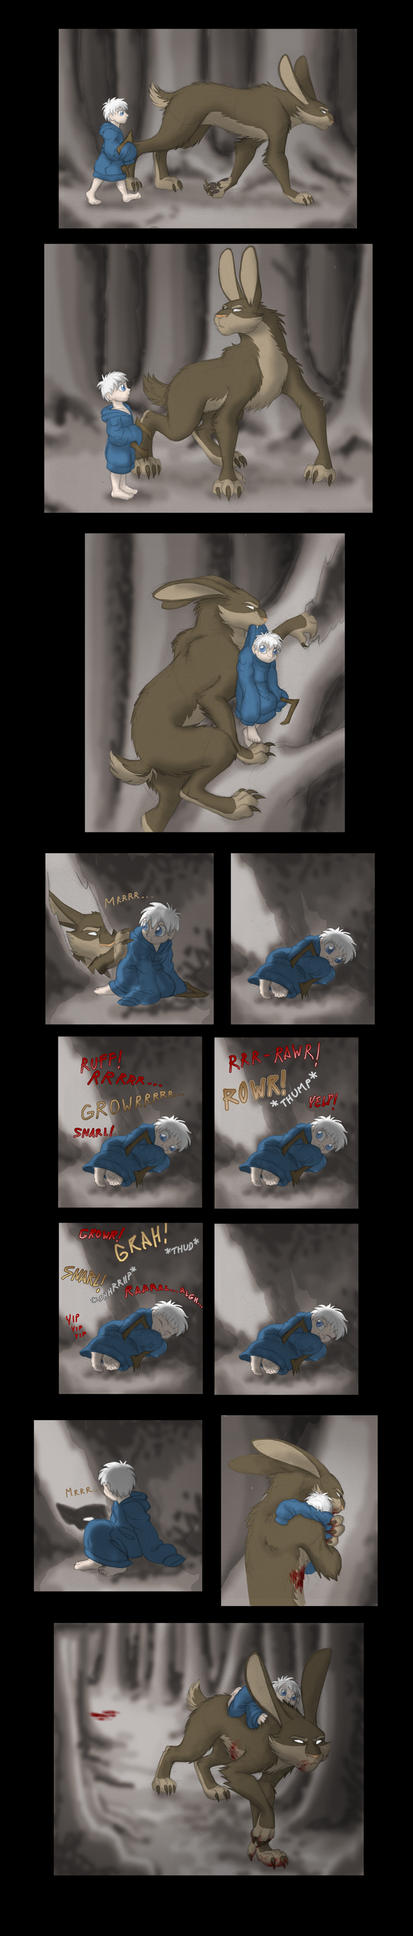 ROTG - Out Of Sight by merrypaws